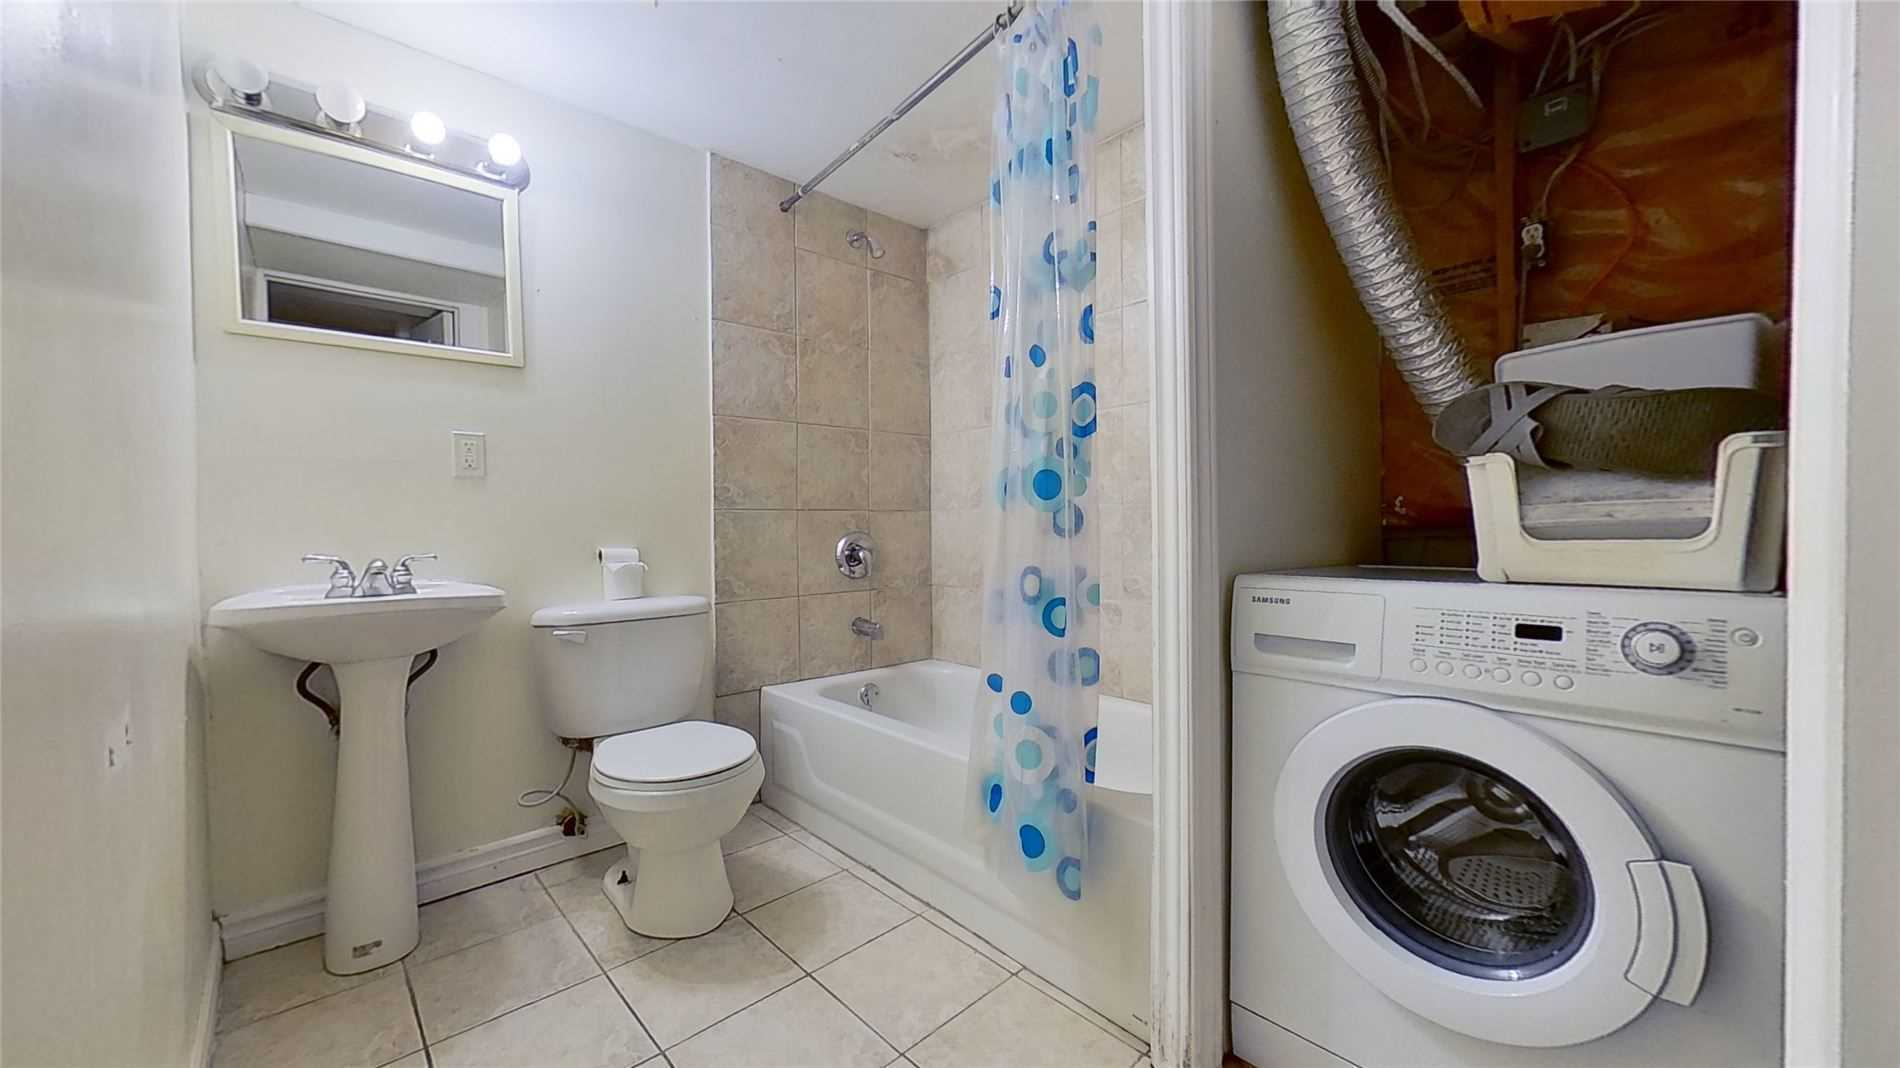 Image 13 of 16 showing inside of 2 Bedroom Detached 2-Storey for Lease at 5 Whalen Crt, Richmond Hill L4C9T5